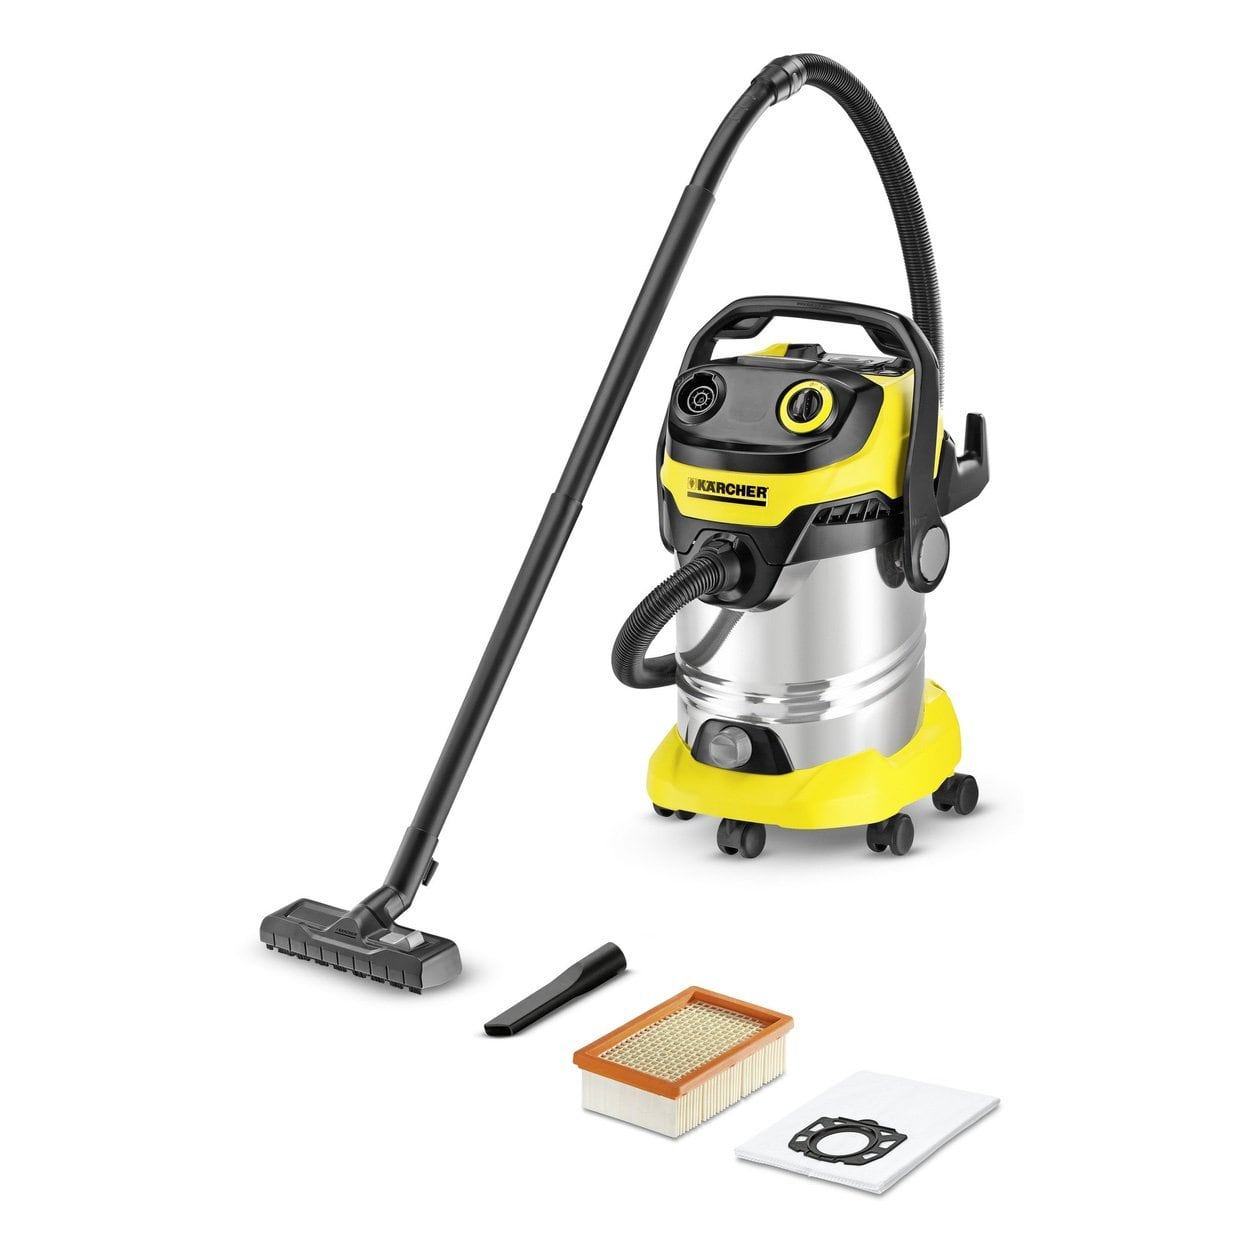 Karcher Mv5 Wet/Dry Vacuum Cleaner